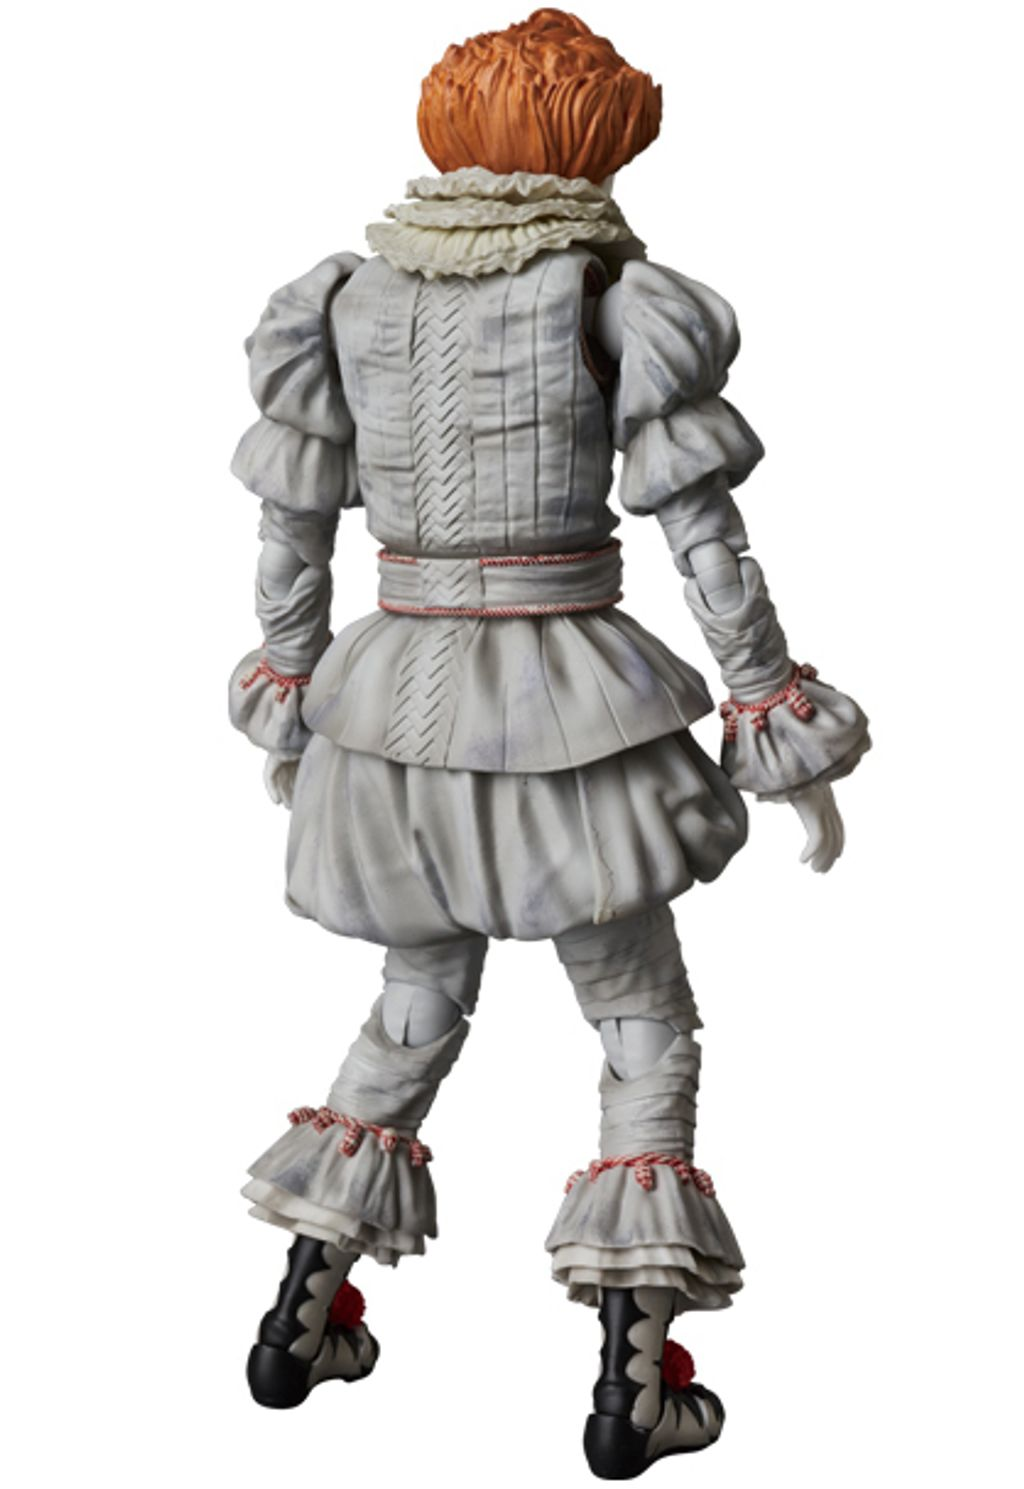 [093]Pennywise_IT2017 006.jpg